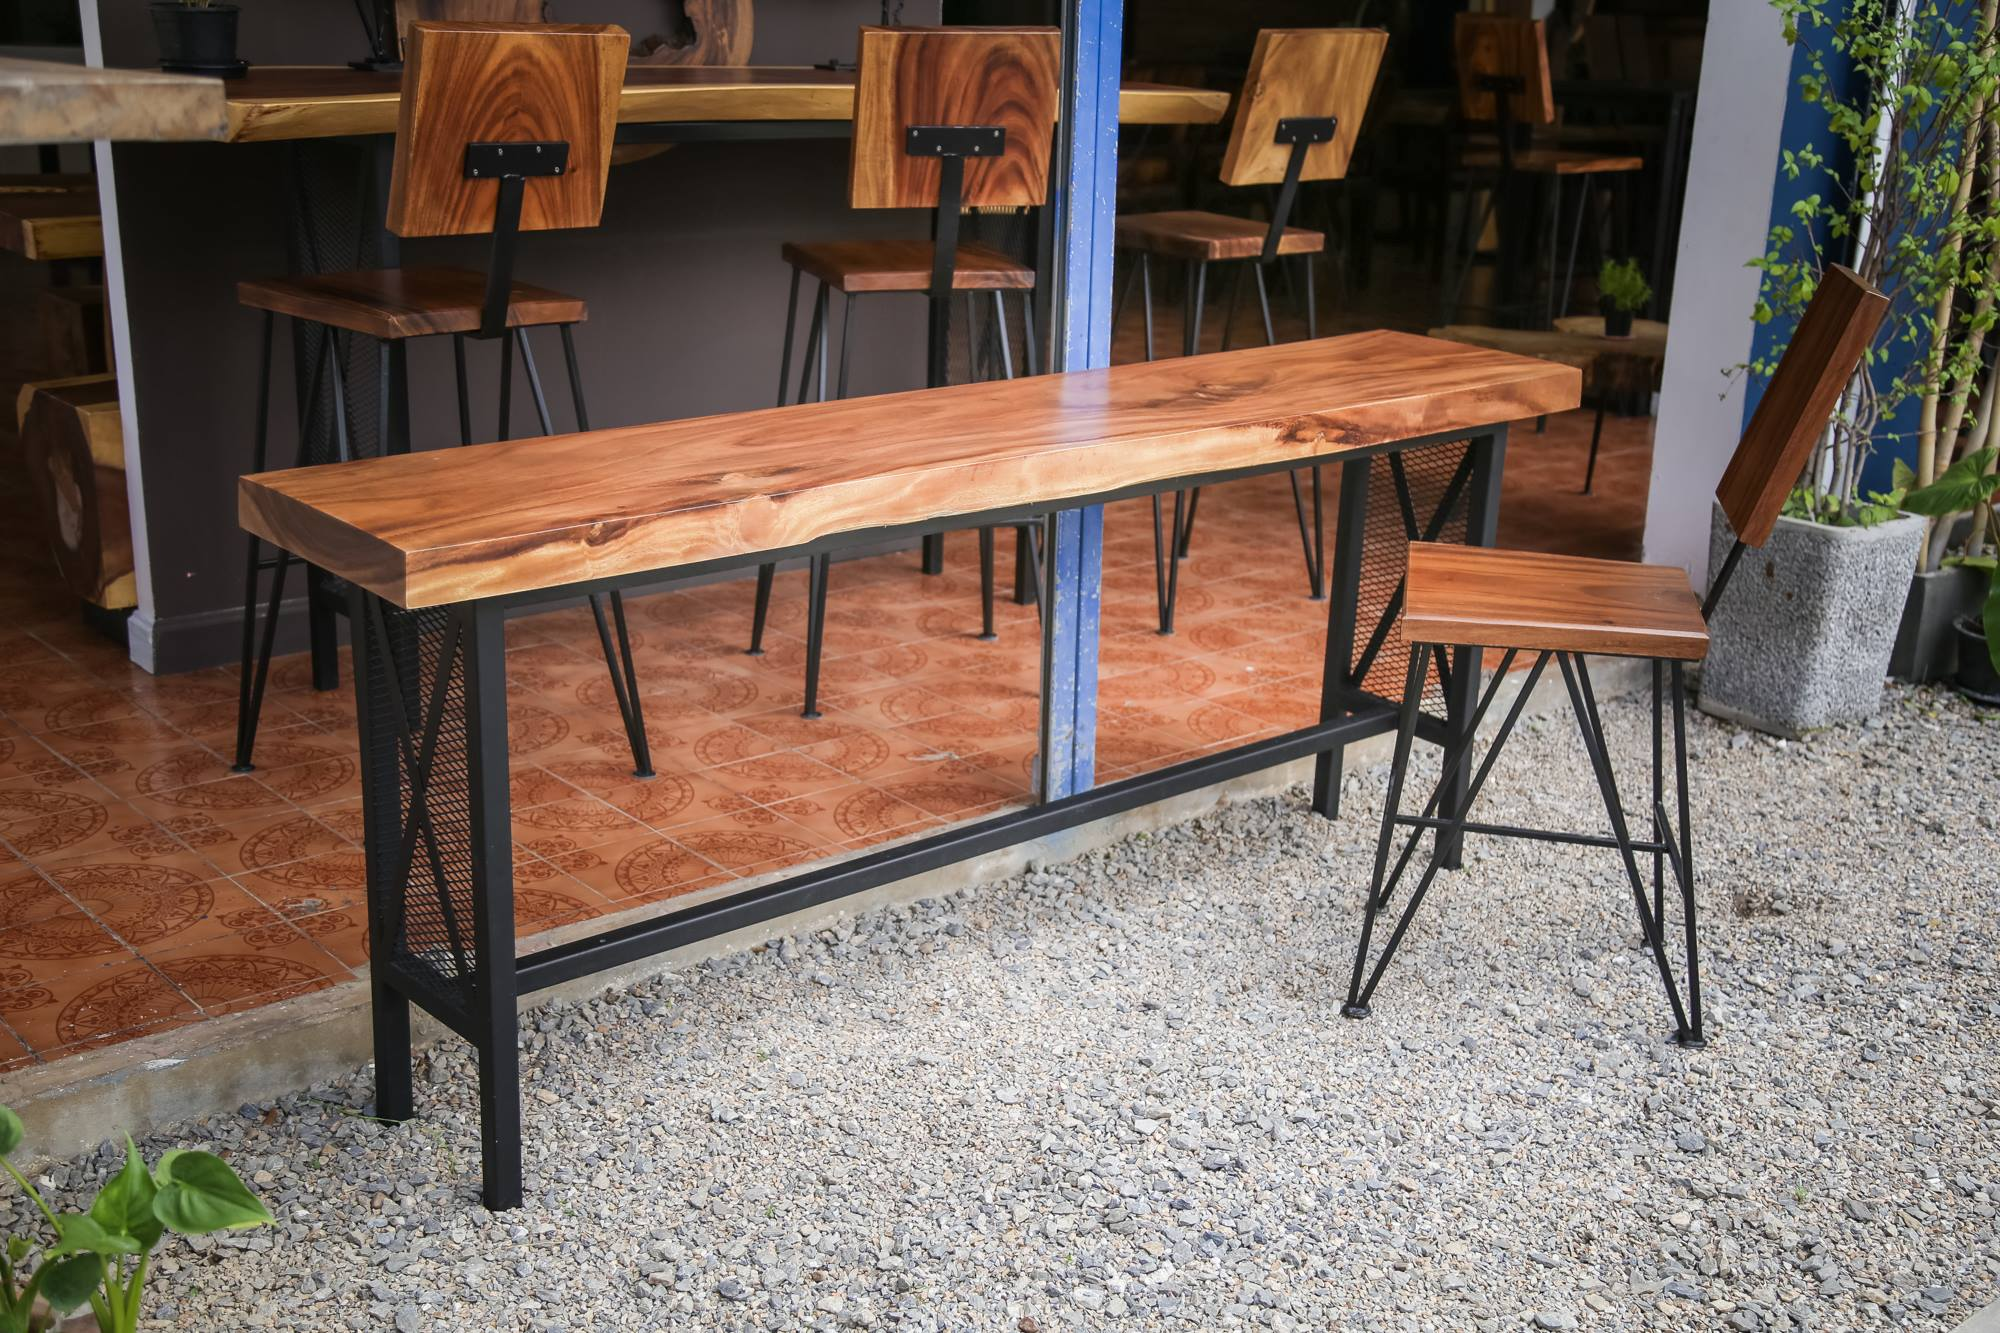 Thailand handicarft wholesale Suar wood sofa table and chairs